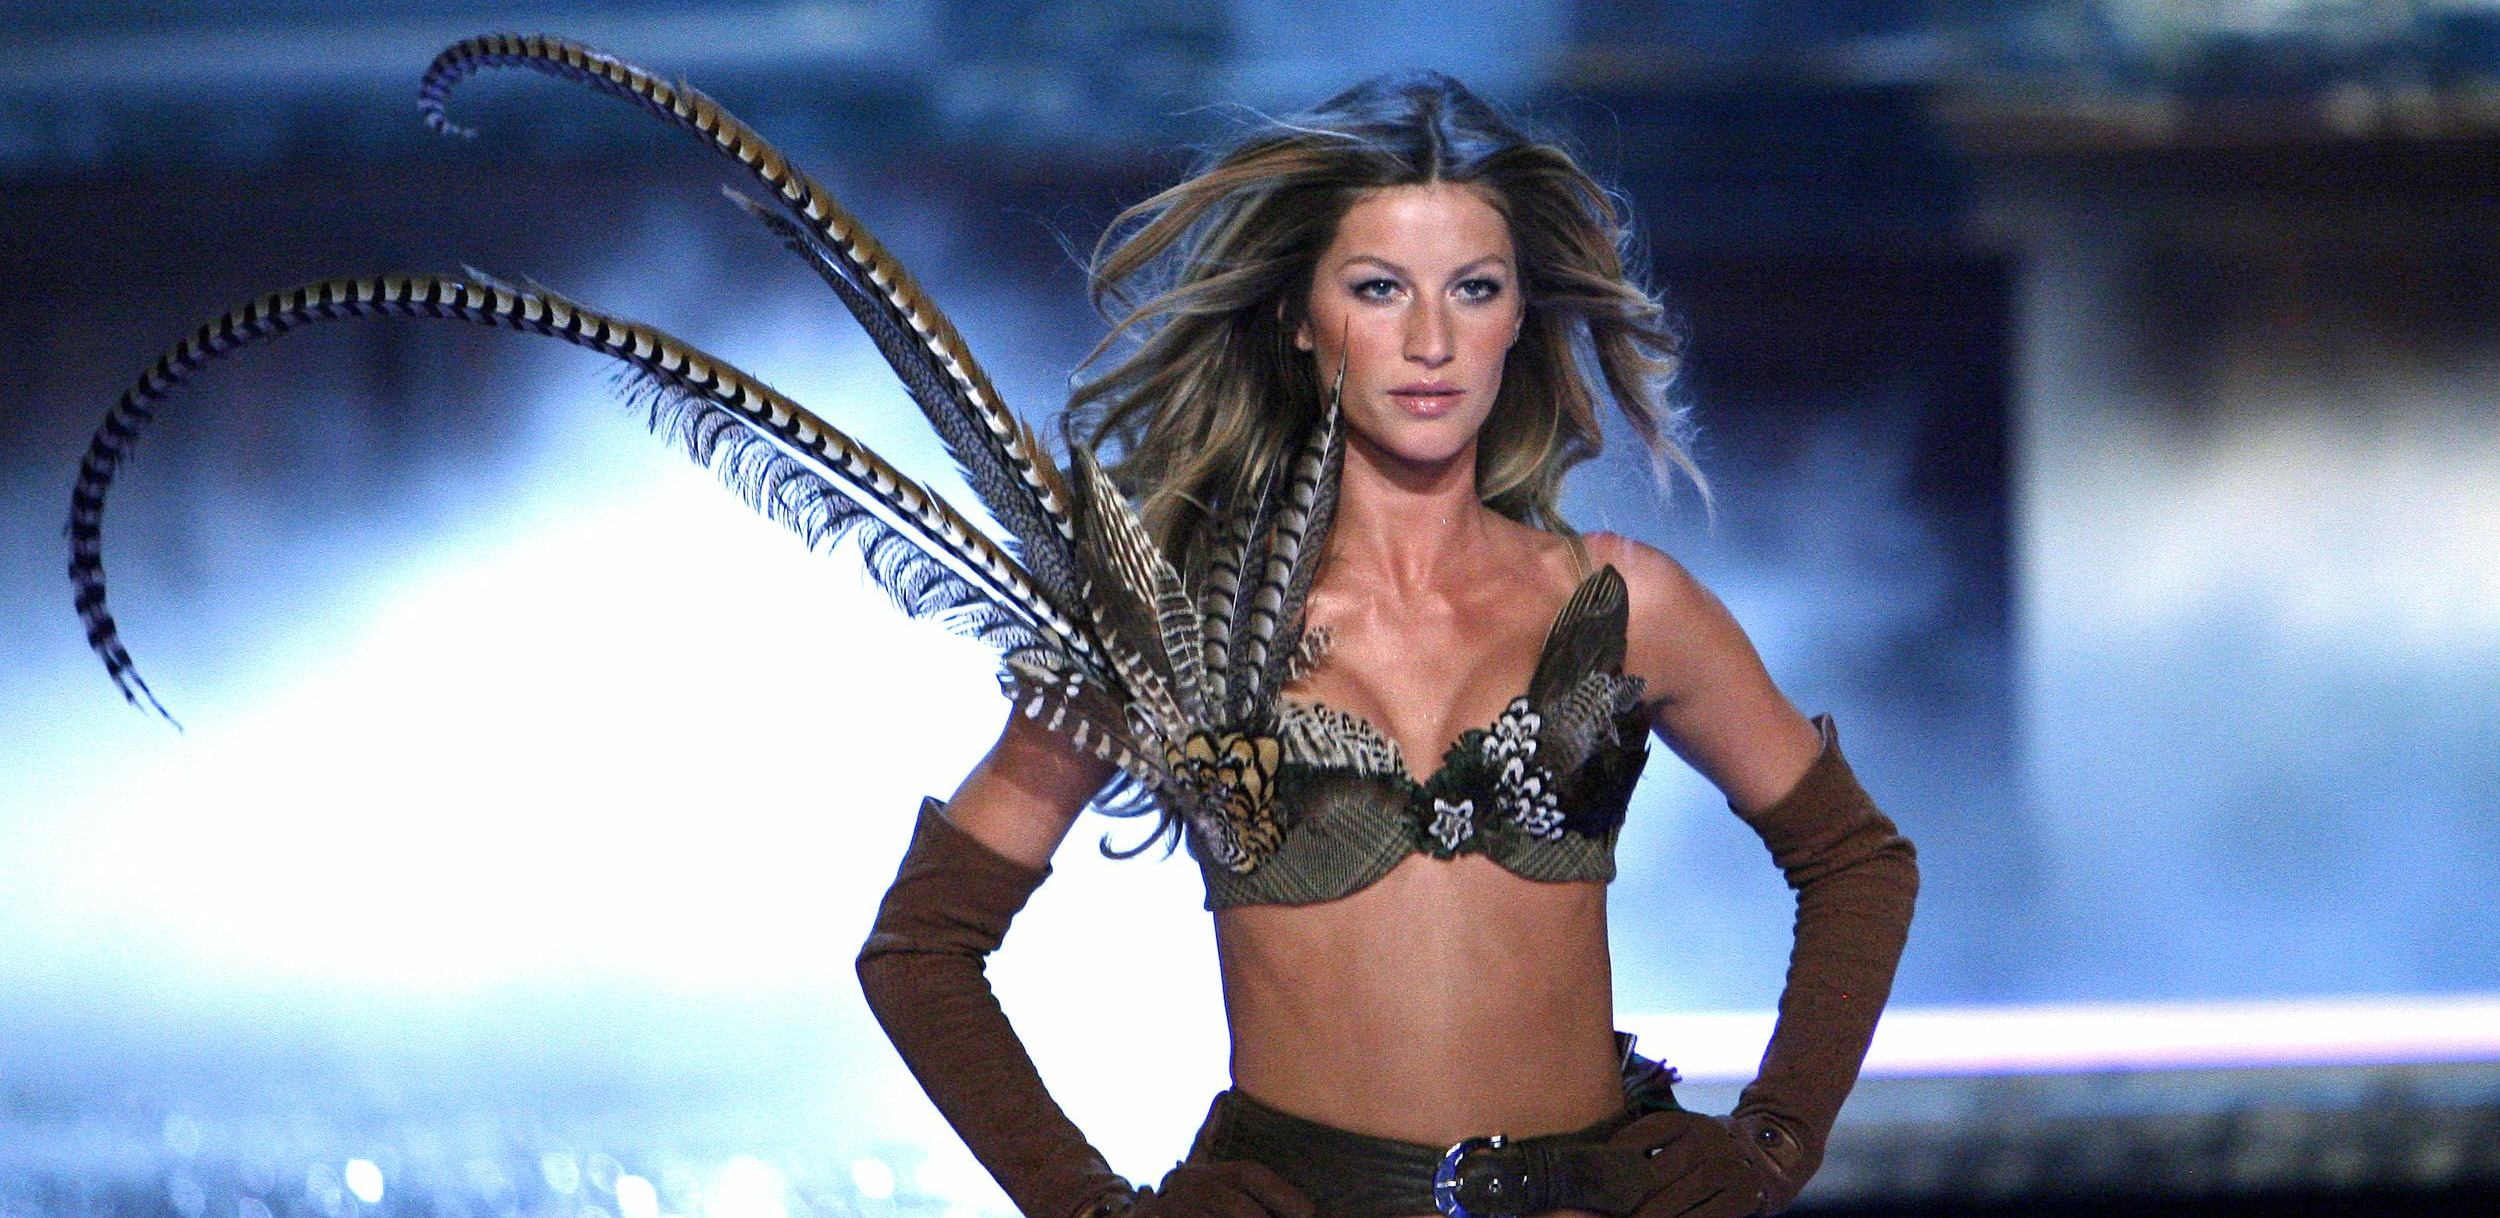 Gisele to present World Cup